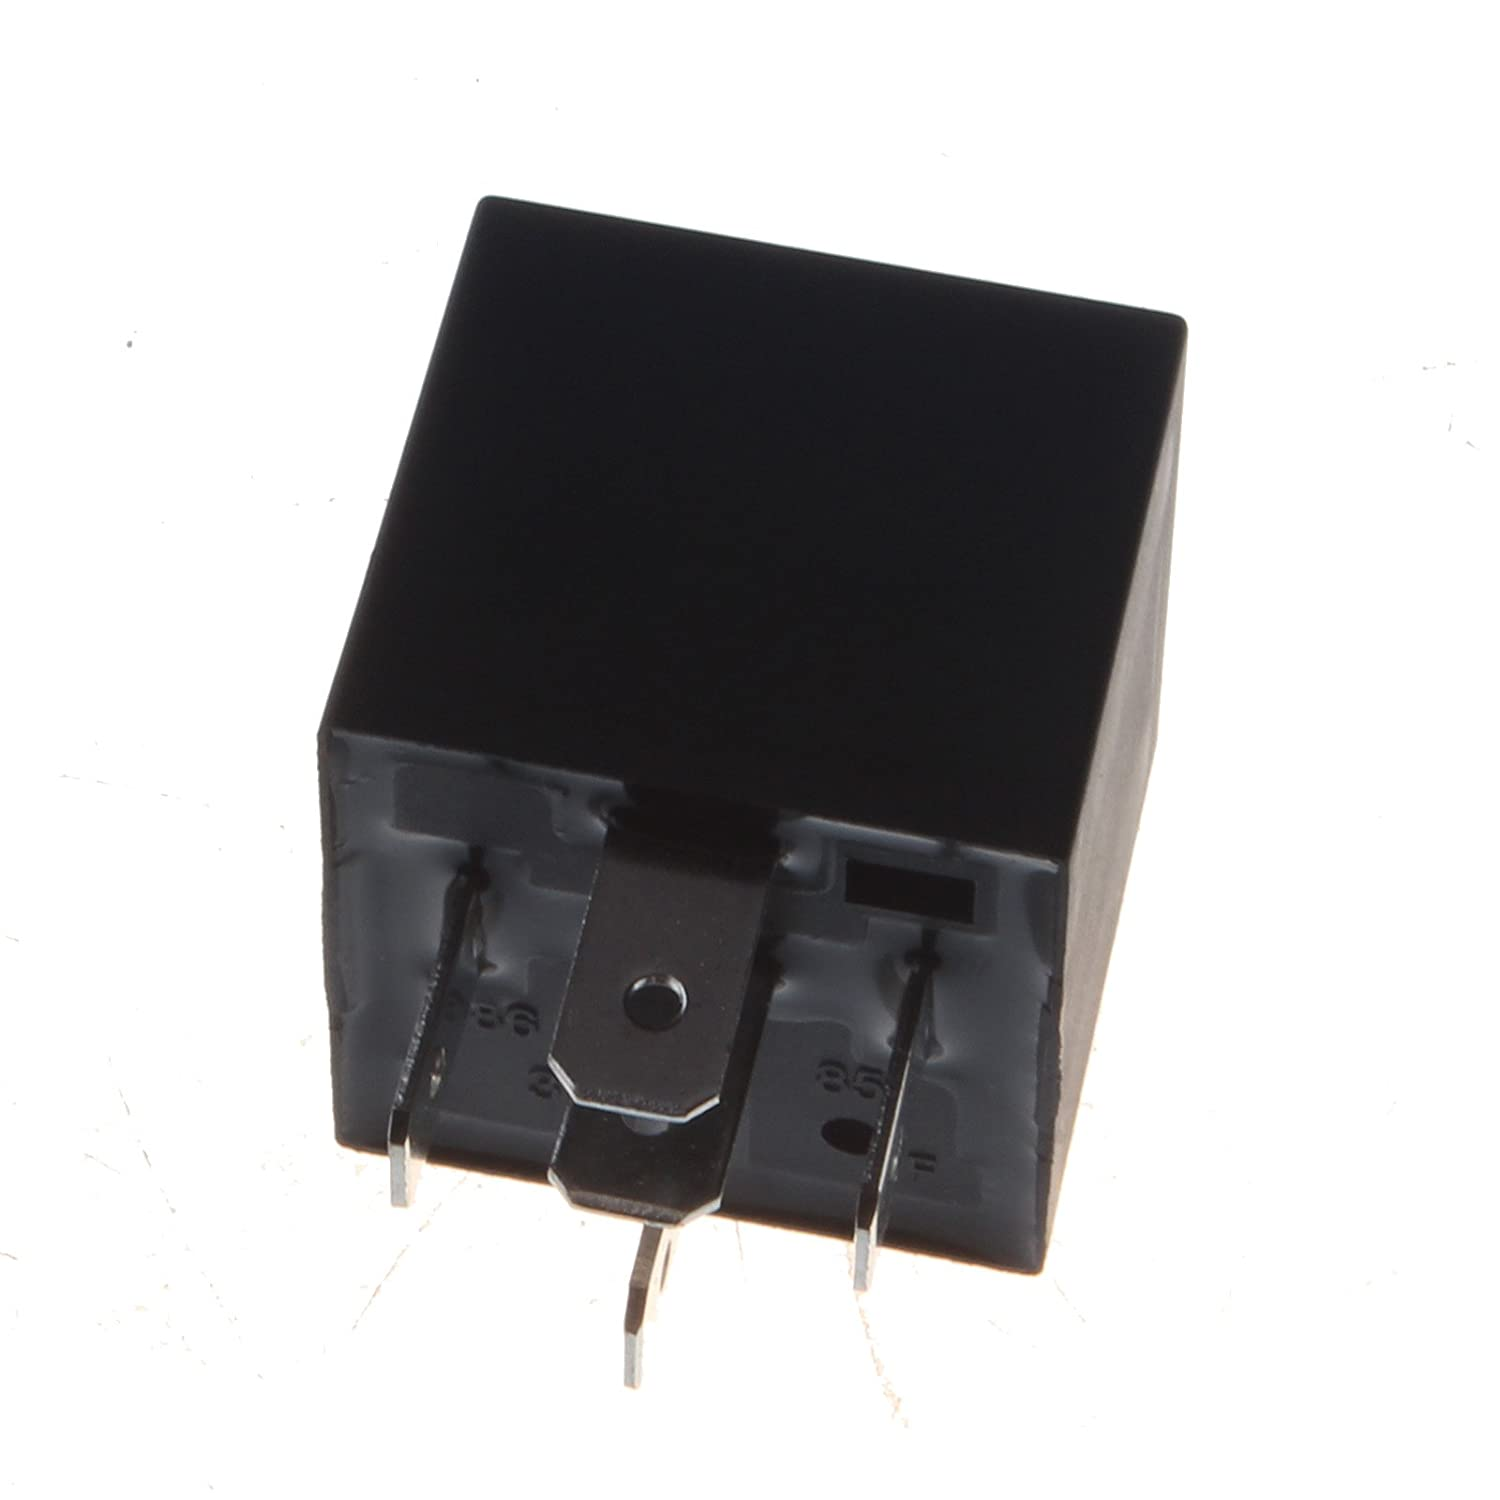 Holdwell Relay Switch Fuse Panel 6679820 For Bobcat 751 1979 Box A Home 753 763 773 863 864 873 883 963 A770 Mt50 Mt52 Mt55 Mt85 S510 S530 S570 S590 S630 S650